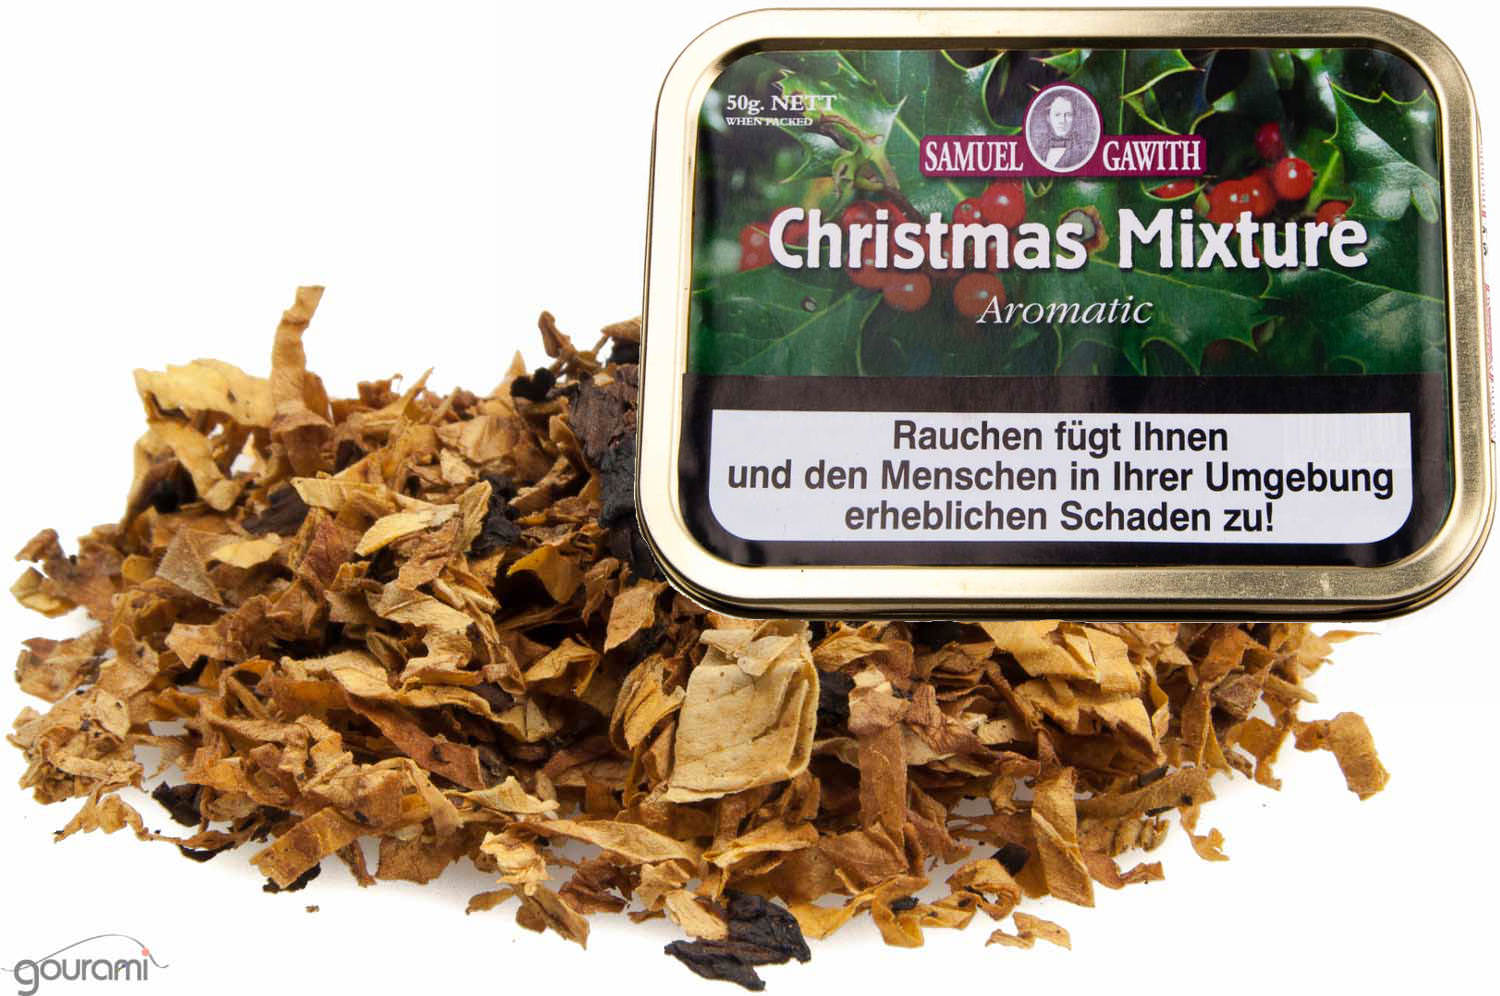 Samuel-Gawith_Christmas-Mixture-Aromatic